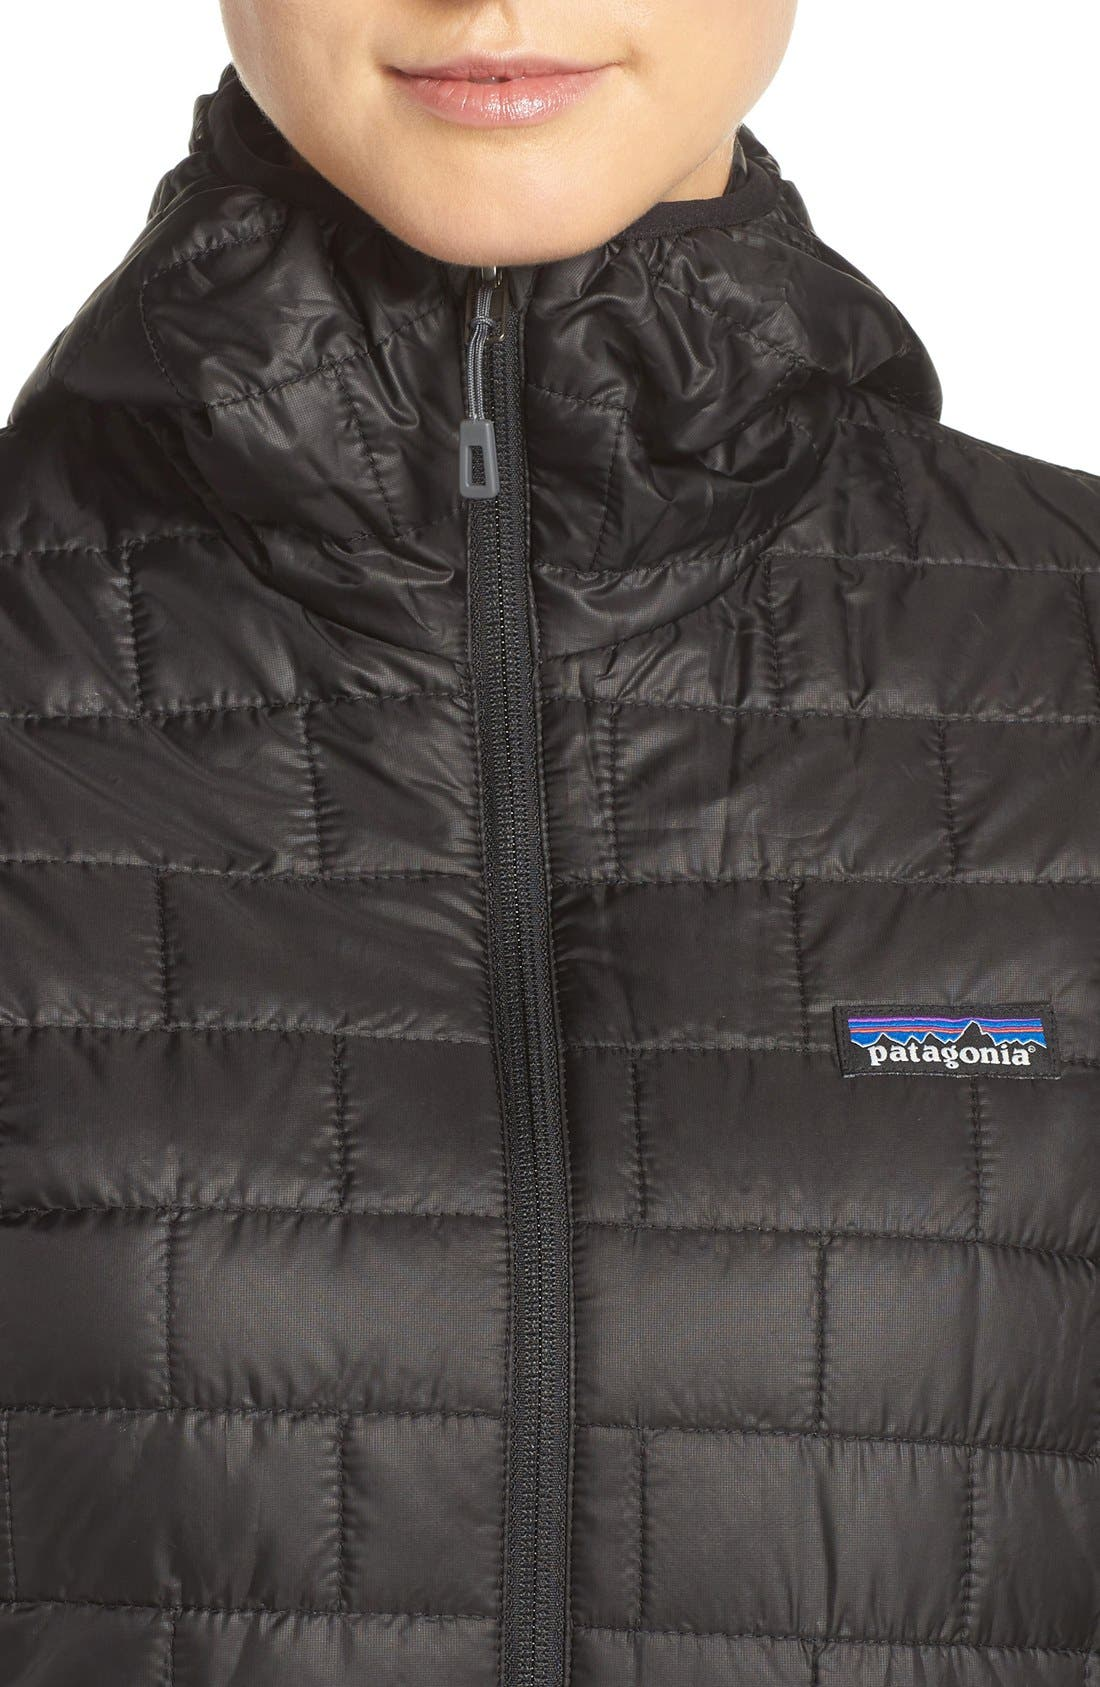 PATAGONIA, Nano Puff<sup>®</sup> Hooded Water Resistant Jacket, Alternate thumbnail 5, color, BLACK